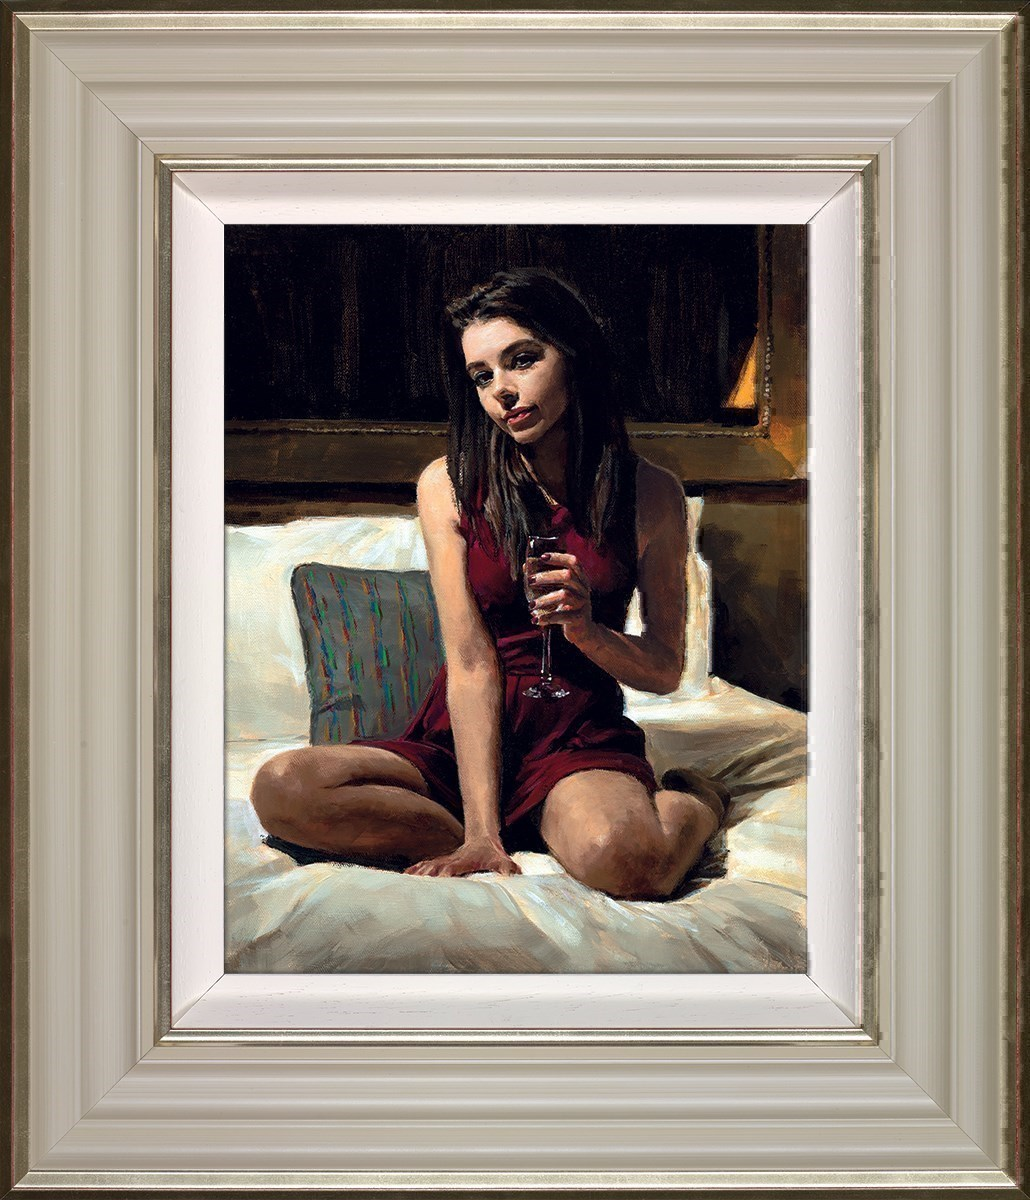 Bella by Fabian Perez - Framed Embelished Canvas on Board